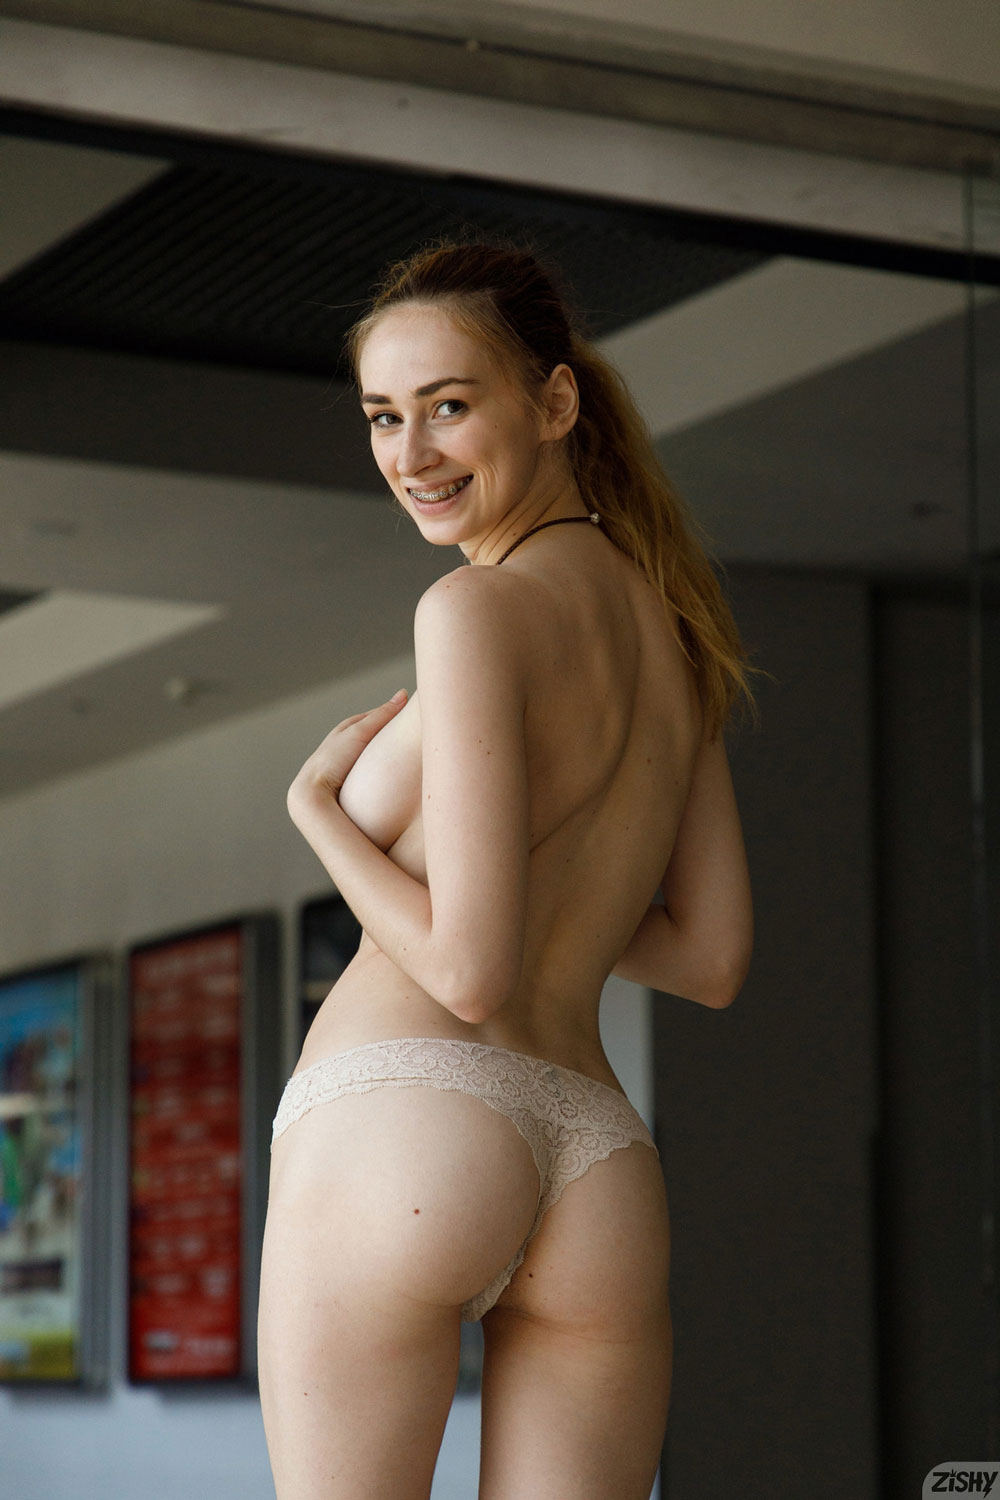 Zishy: Yana West At The Theater 11